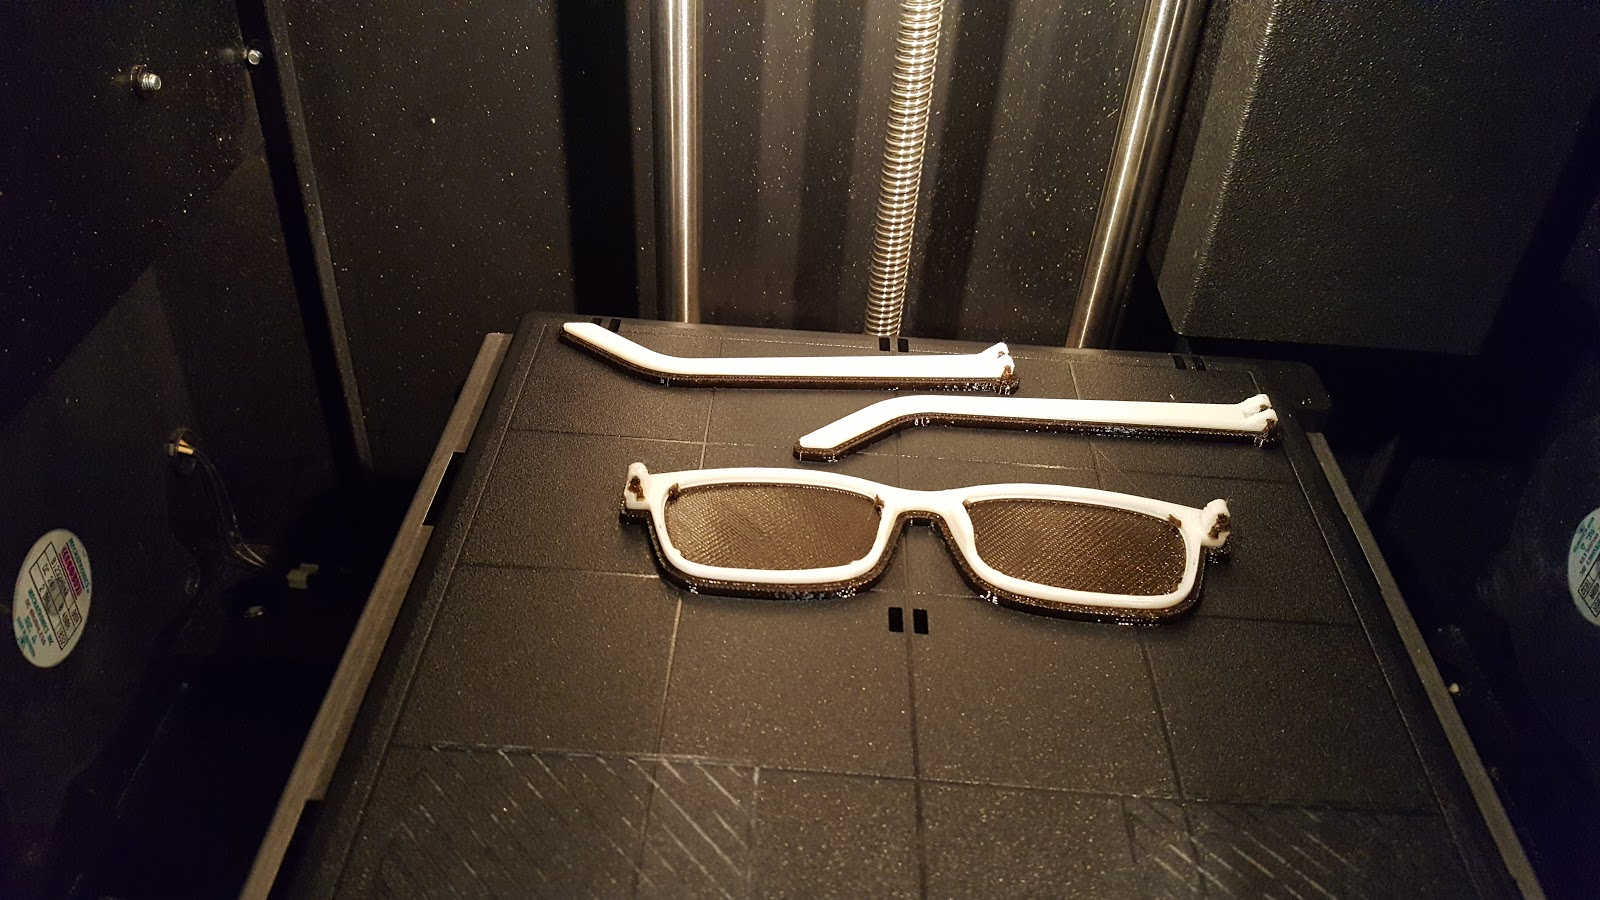 A prototype of the 3D-printed eyeglasses created by the LSU team. Credit: Macie Coker.